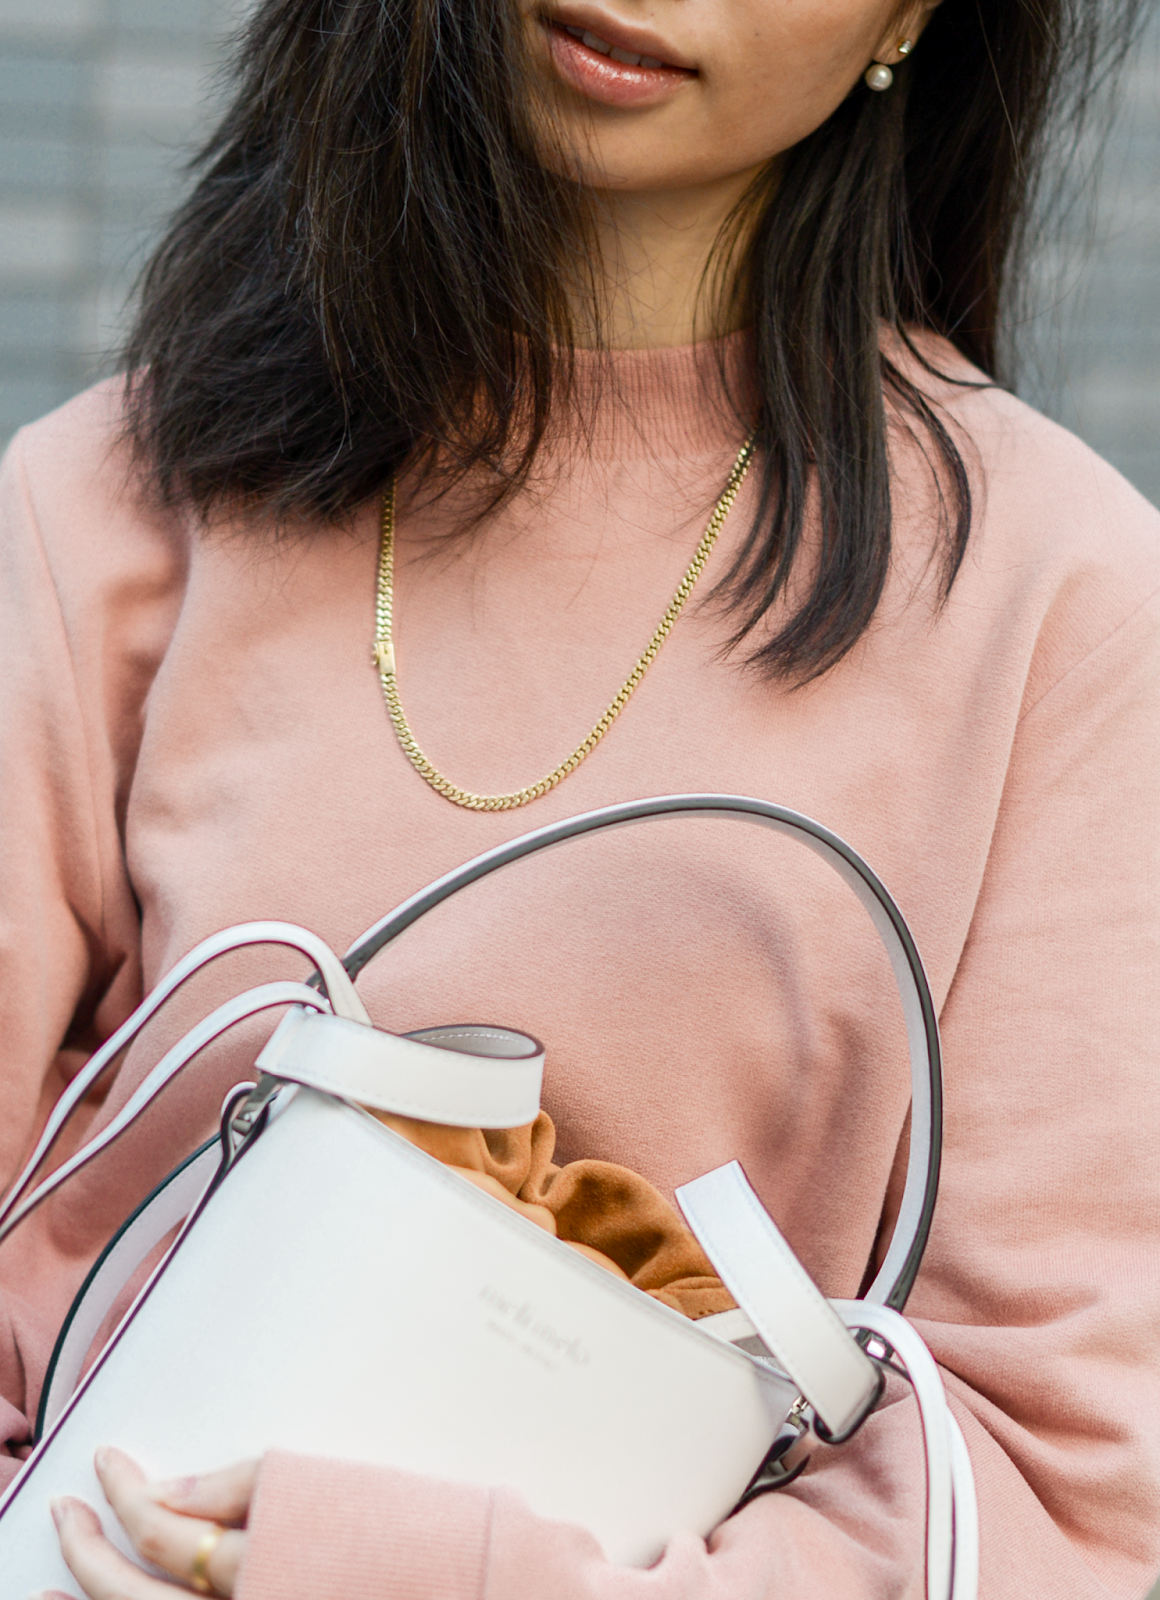 Meli Melo White Bucket Bag, Santina White Bucket Bag Meli Melo, How To Wear A Bucket Bag, Ways To Style A White Bucket Bag, Perfect Weekend Bags / Weekender Whites / FOREVERVANNY